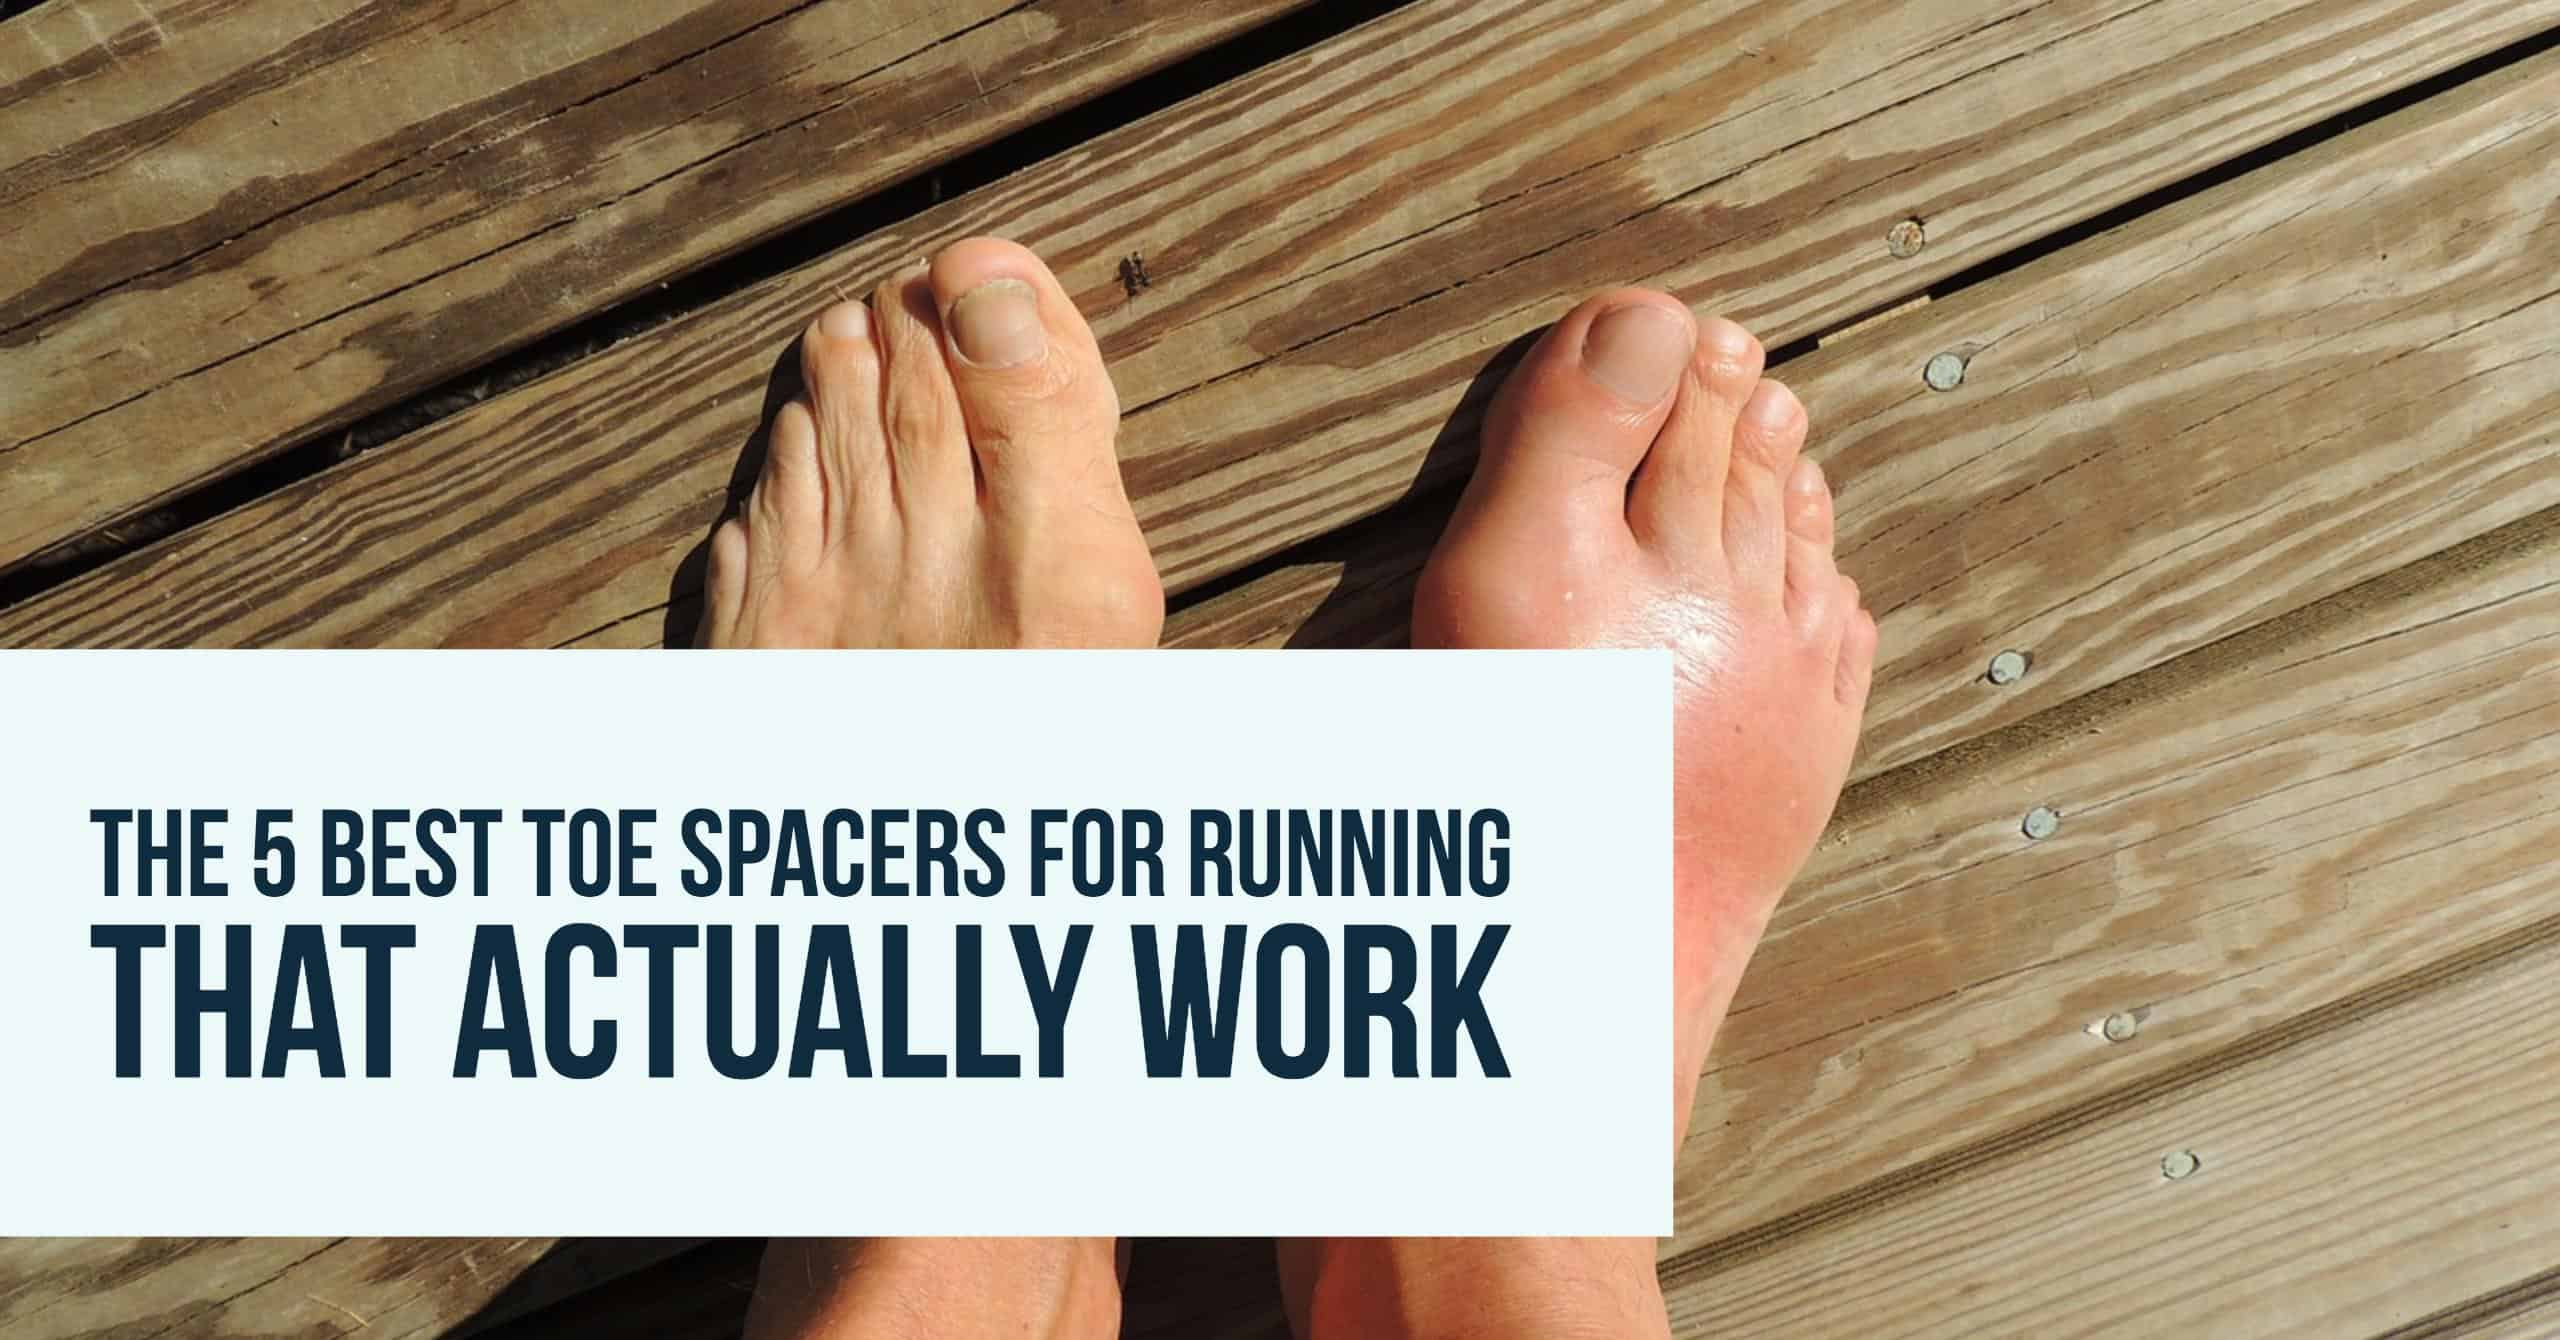 Many runners experience toe problems especially bunions, blisters, and nails cutting into each other toes. The easiest way to fix that issue is investing toe spacers. Here are the 5 best toe spacers for running that are worth buying.